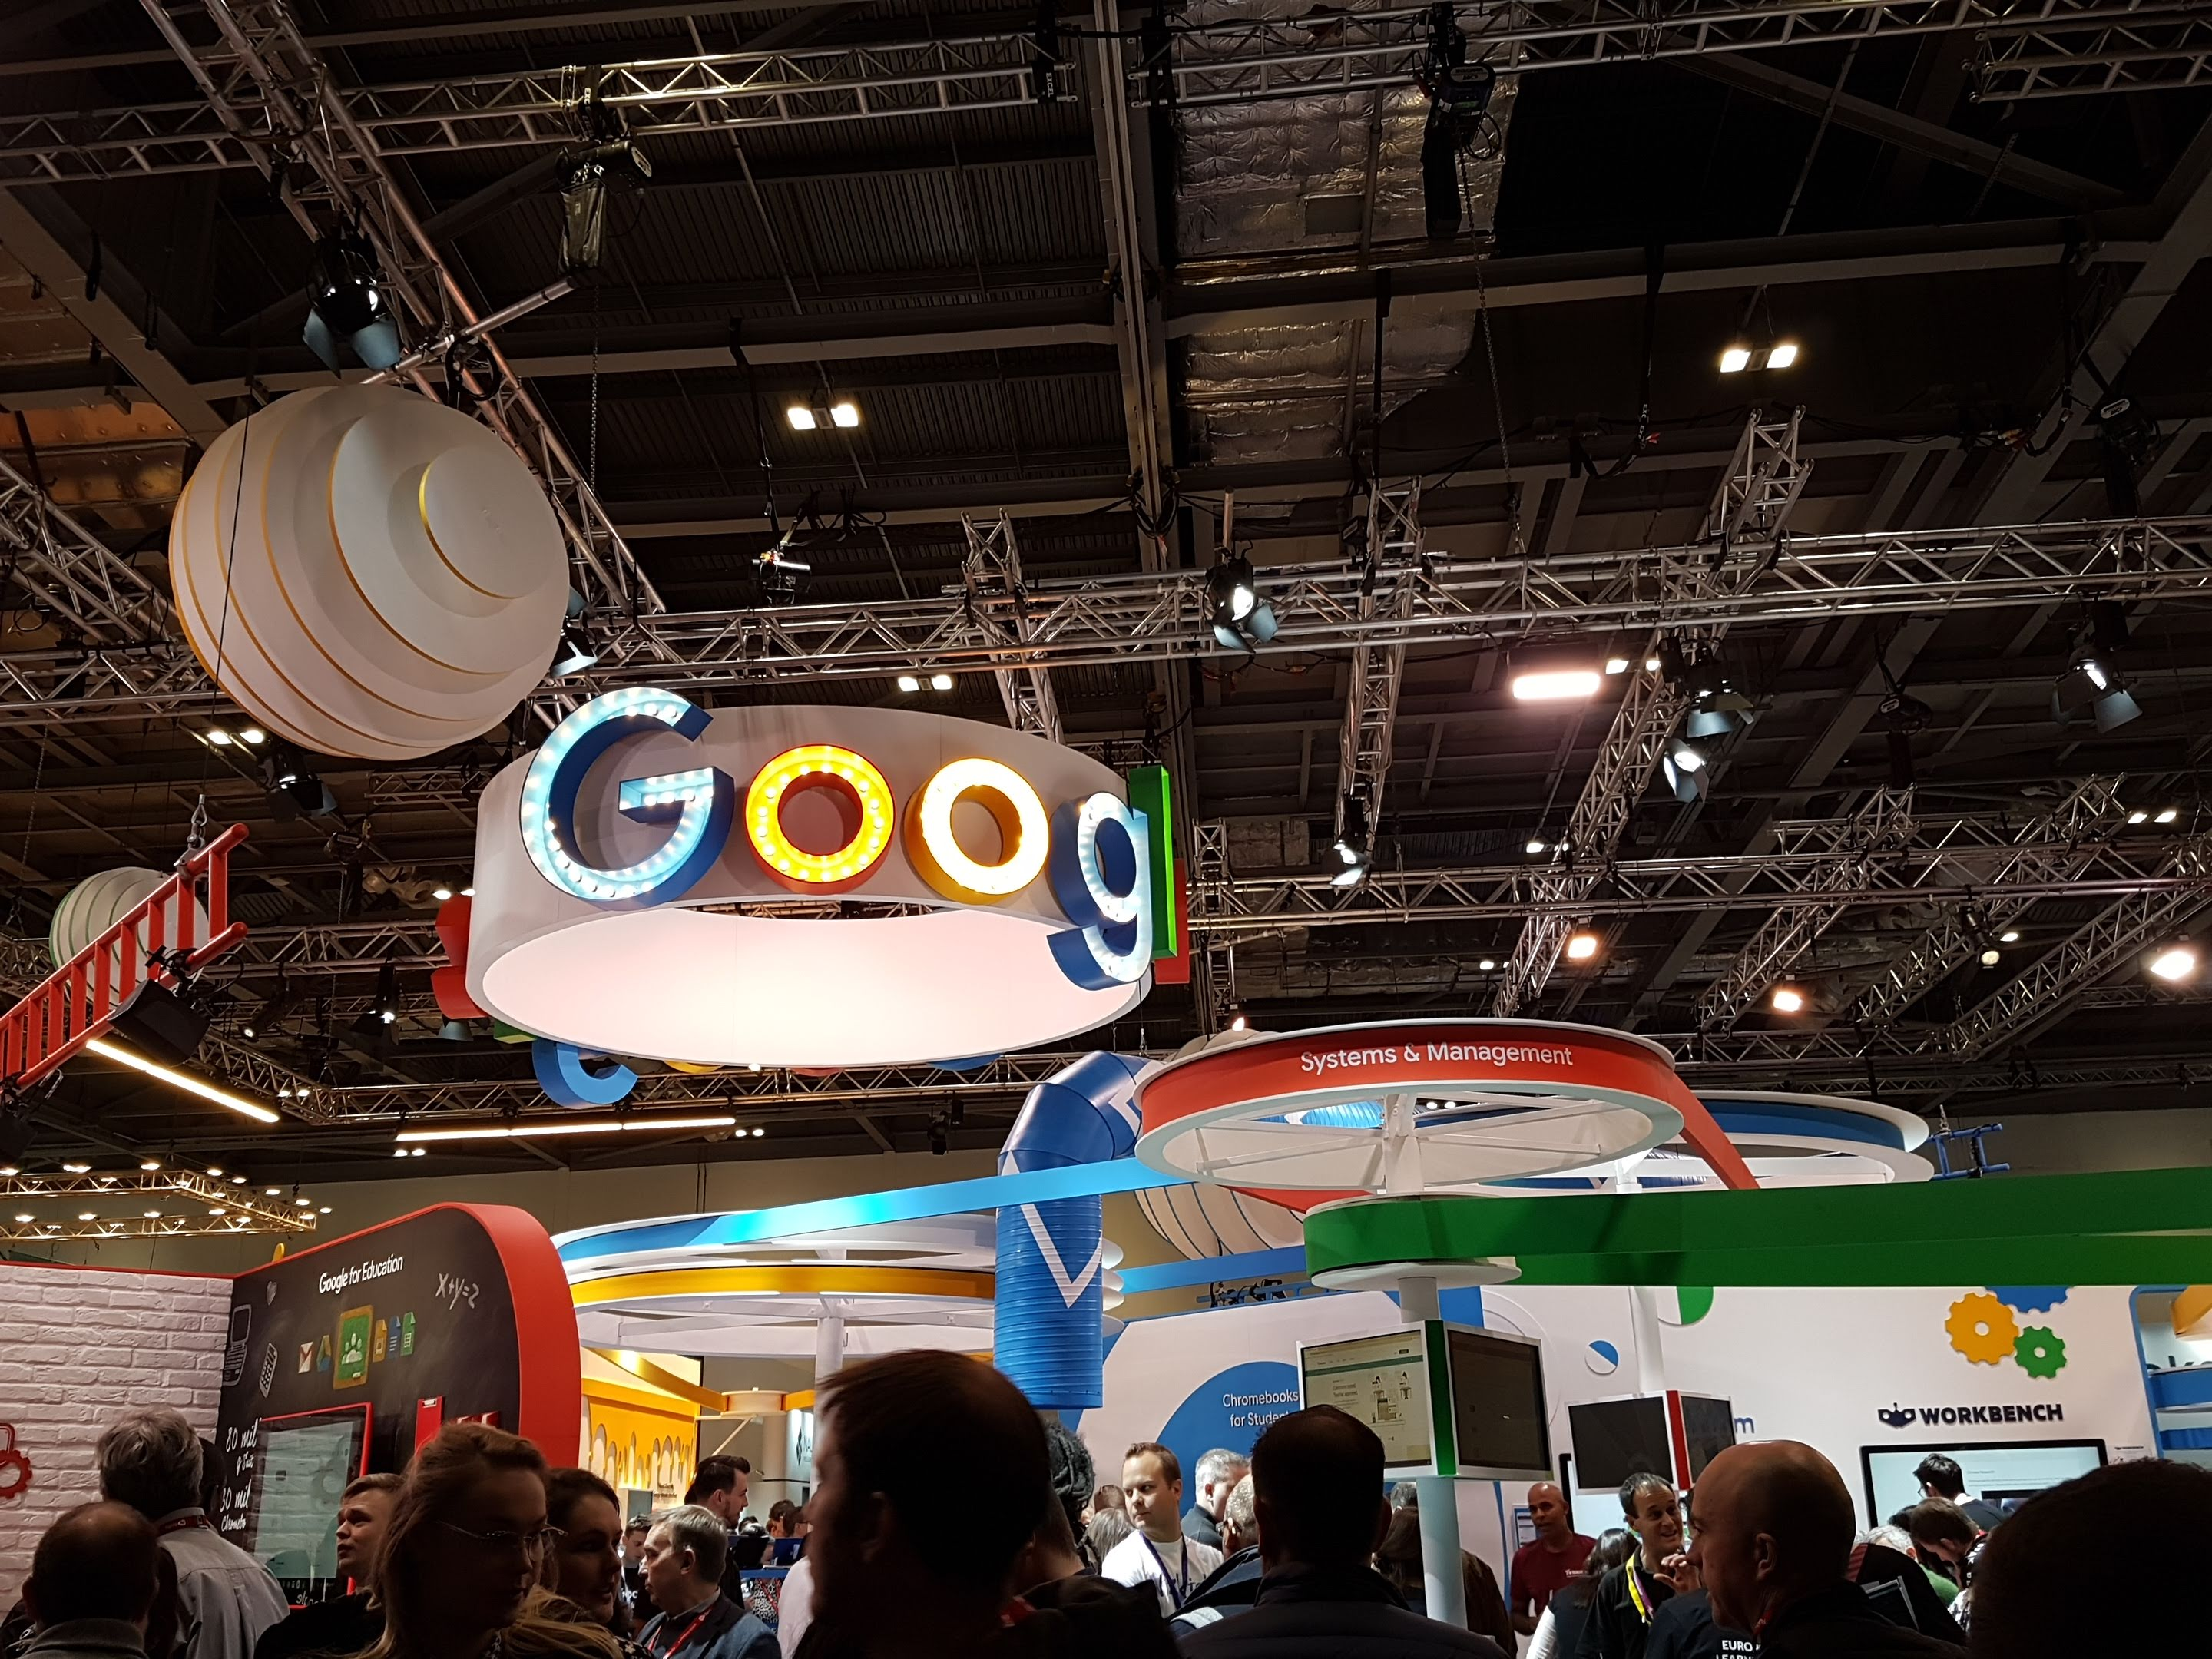 Google's central booth